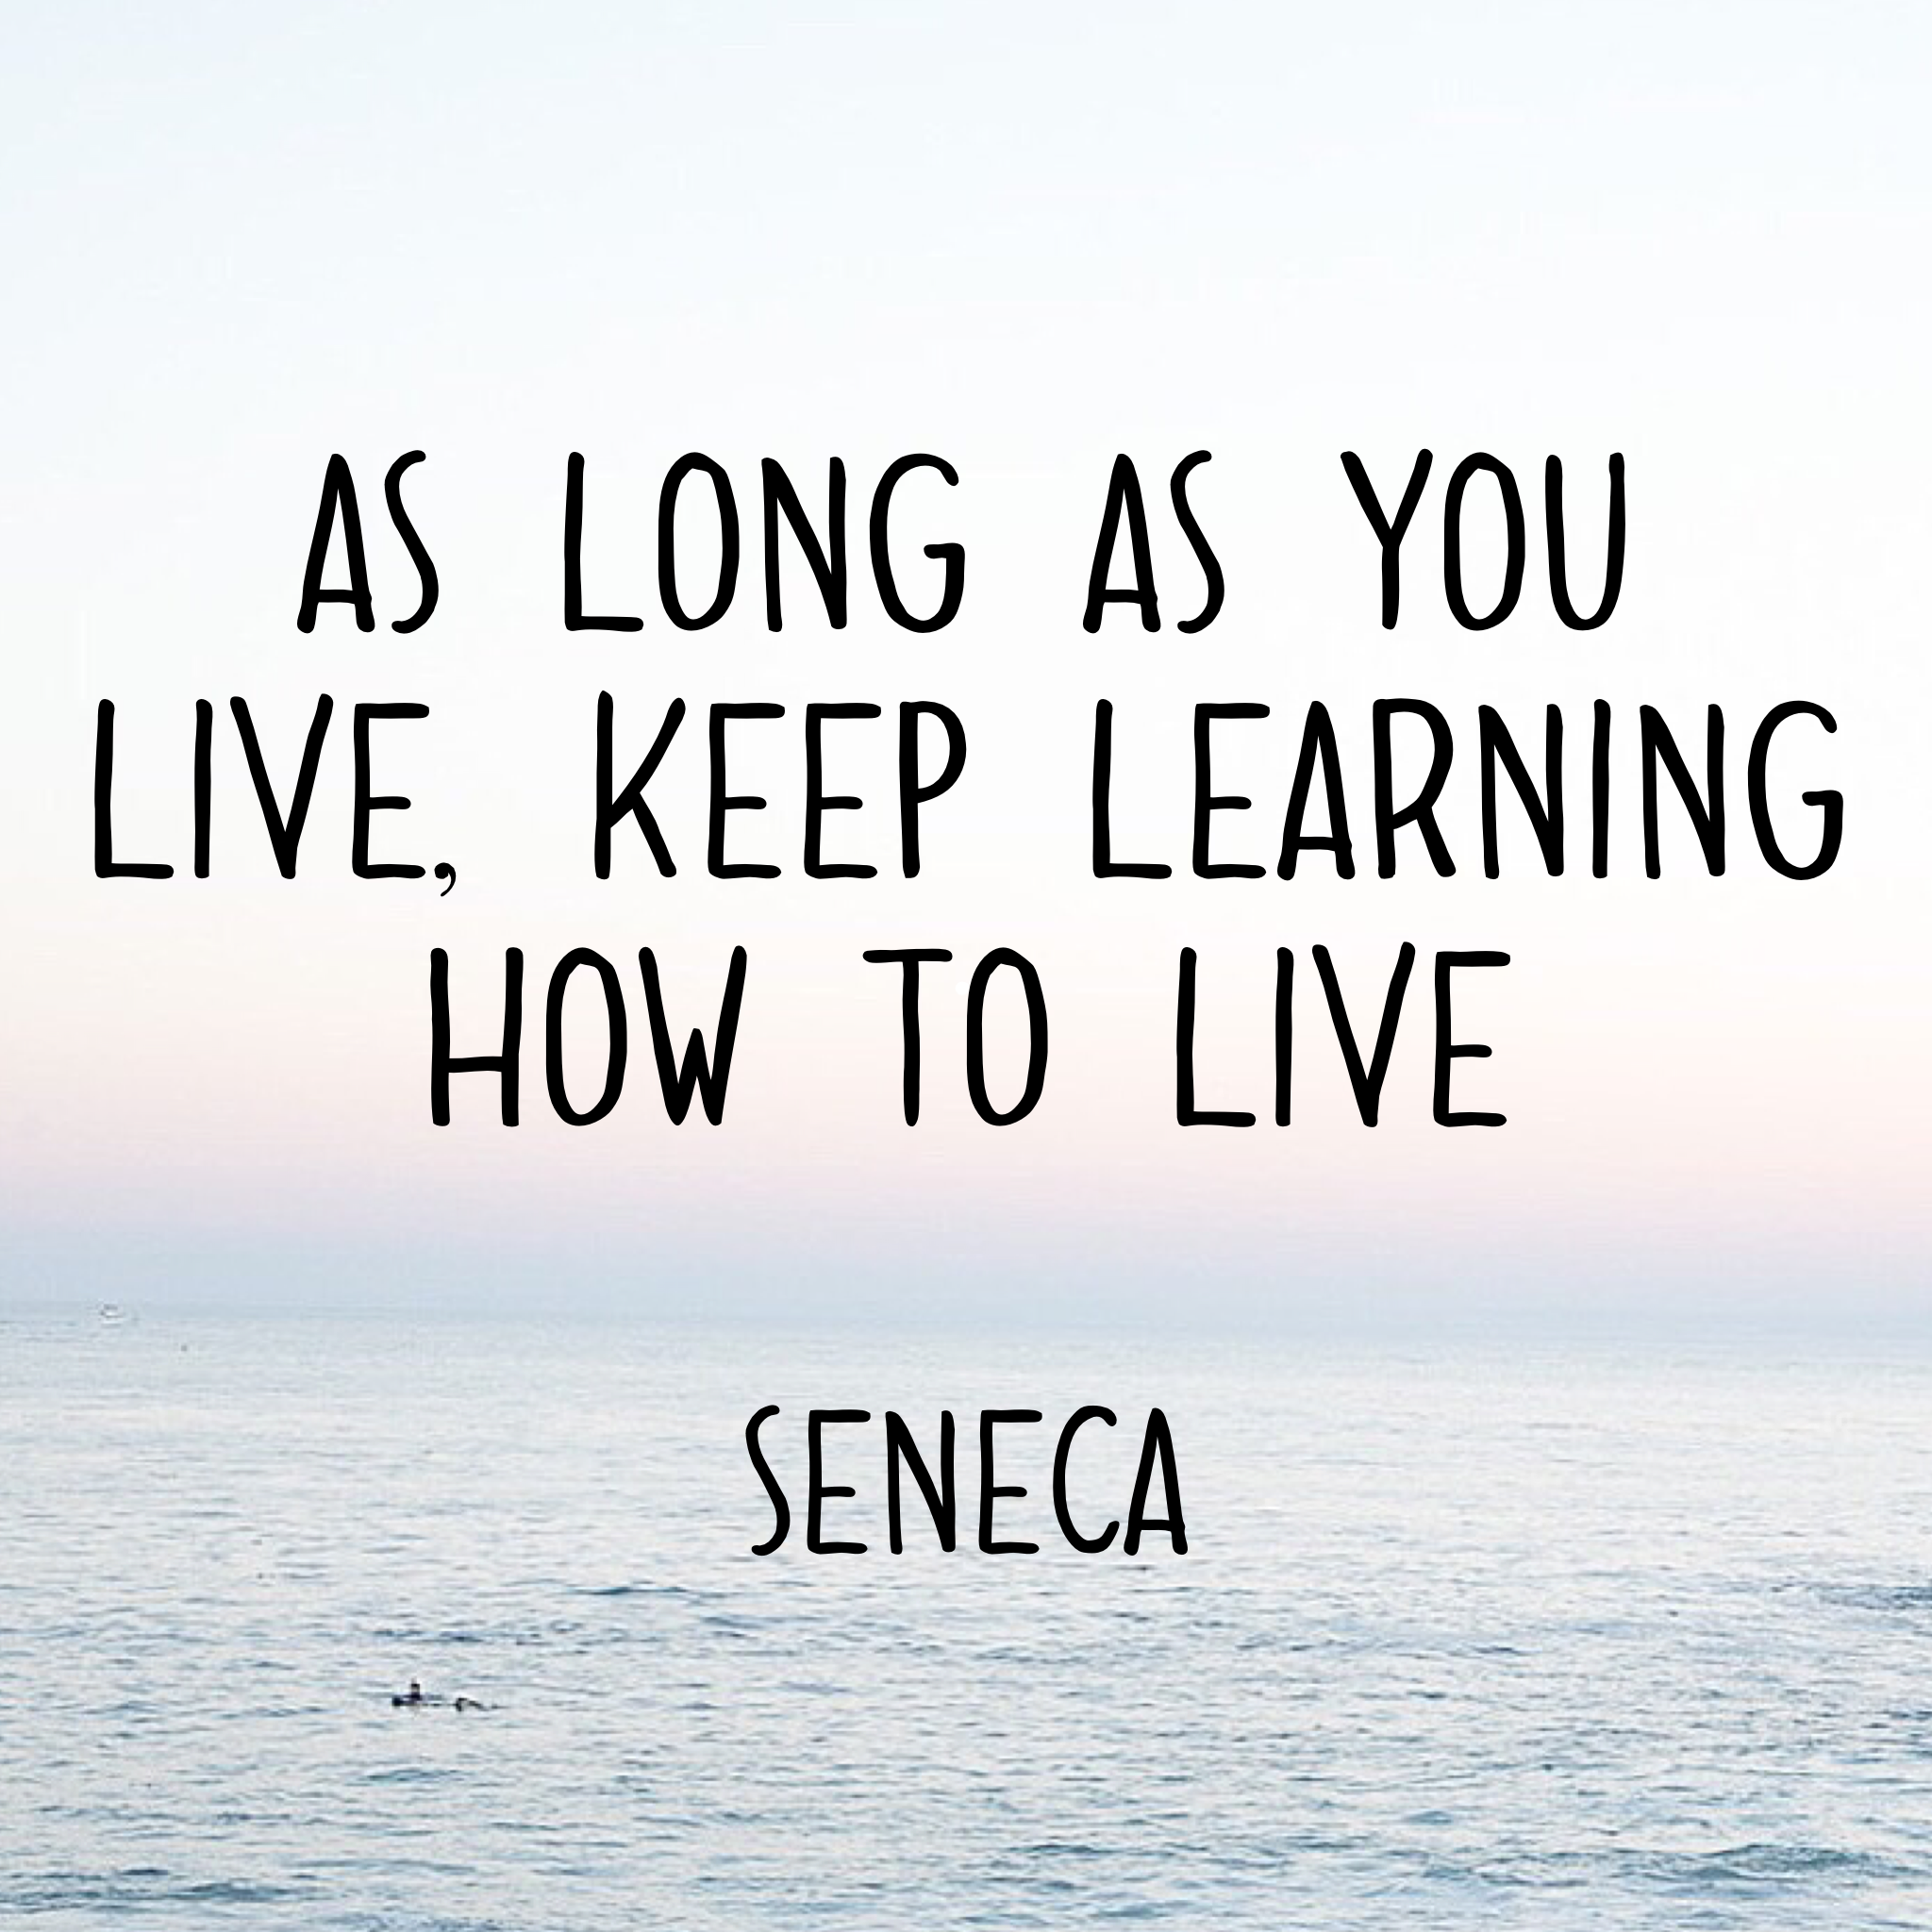 As long as you live, keep learning how to live -Seneca